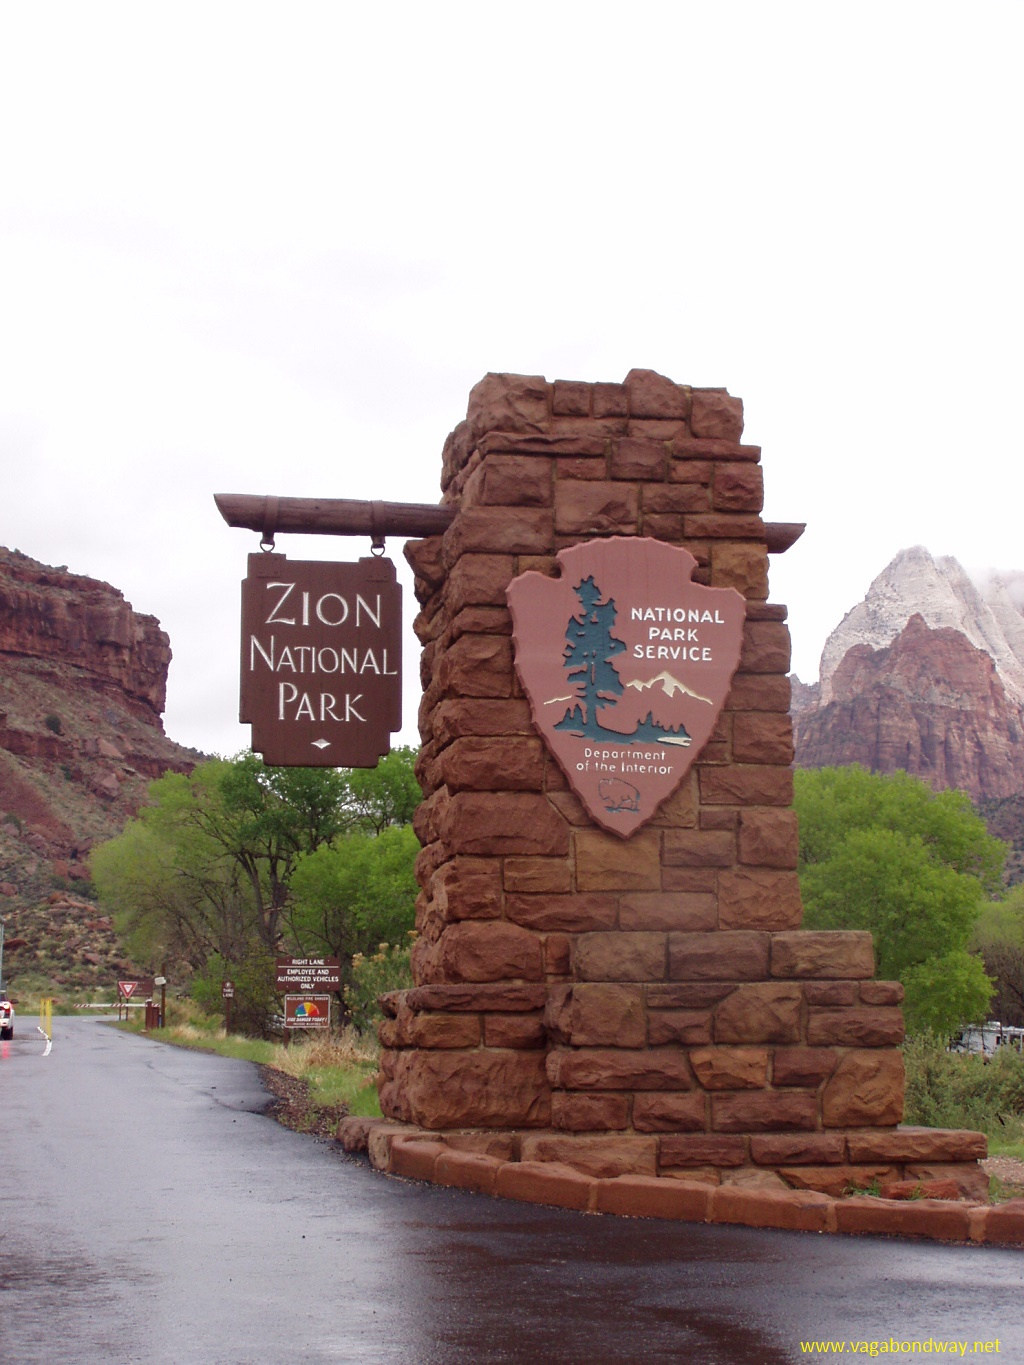 park entrance sign to Zion National Park